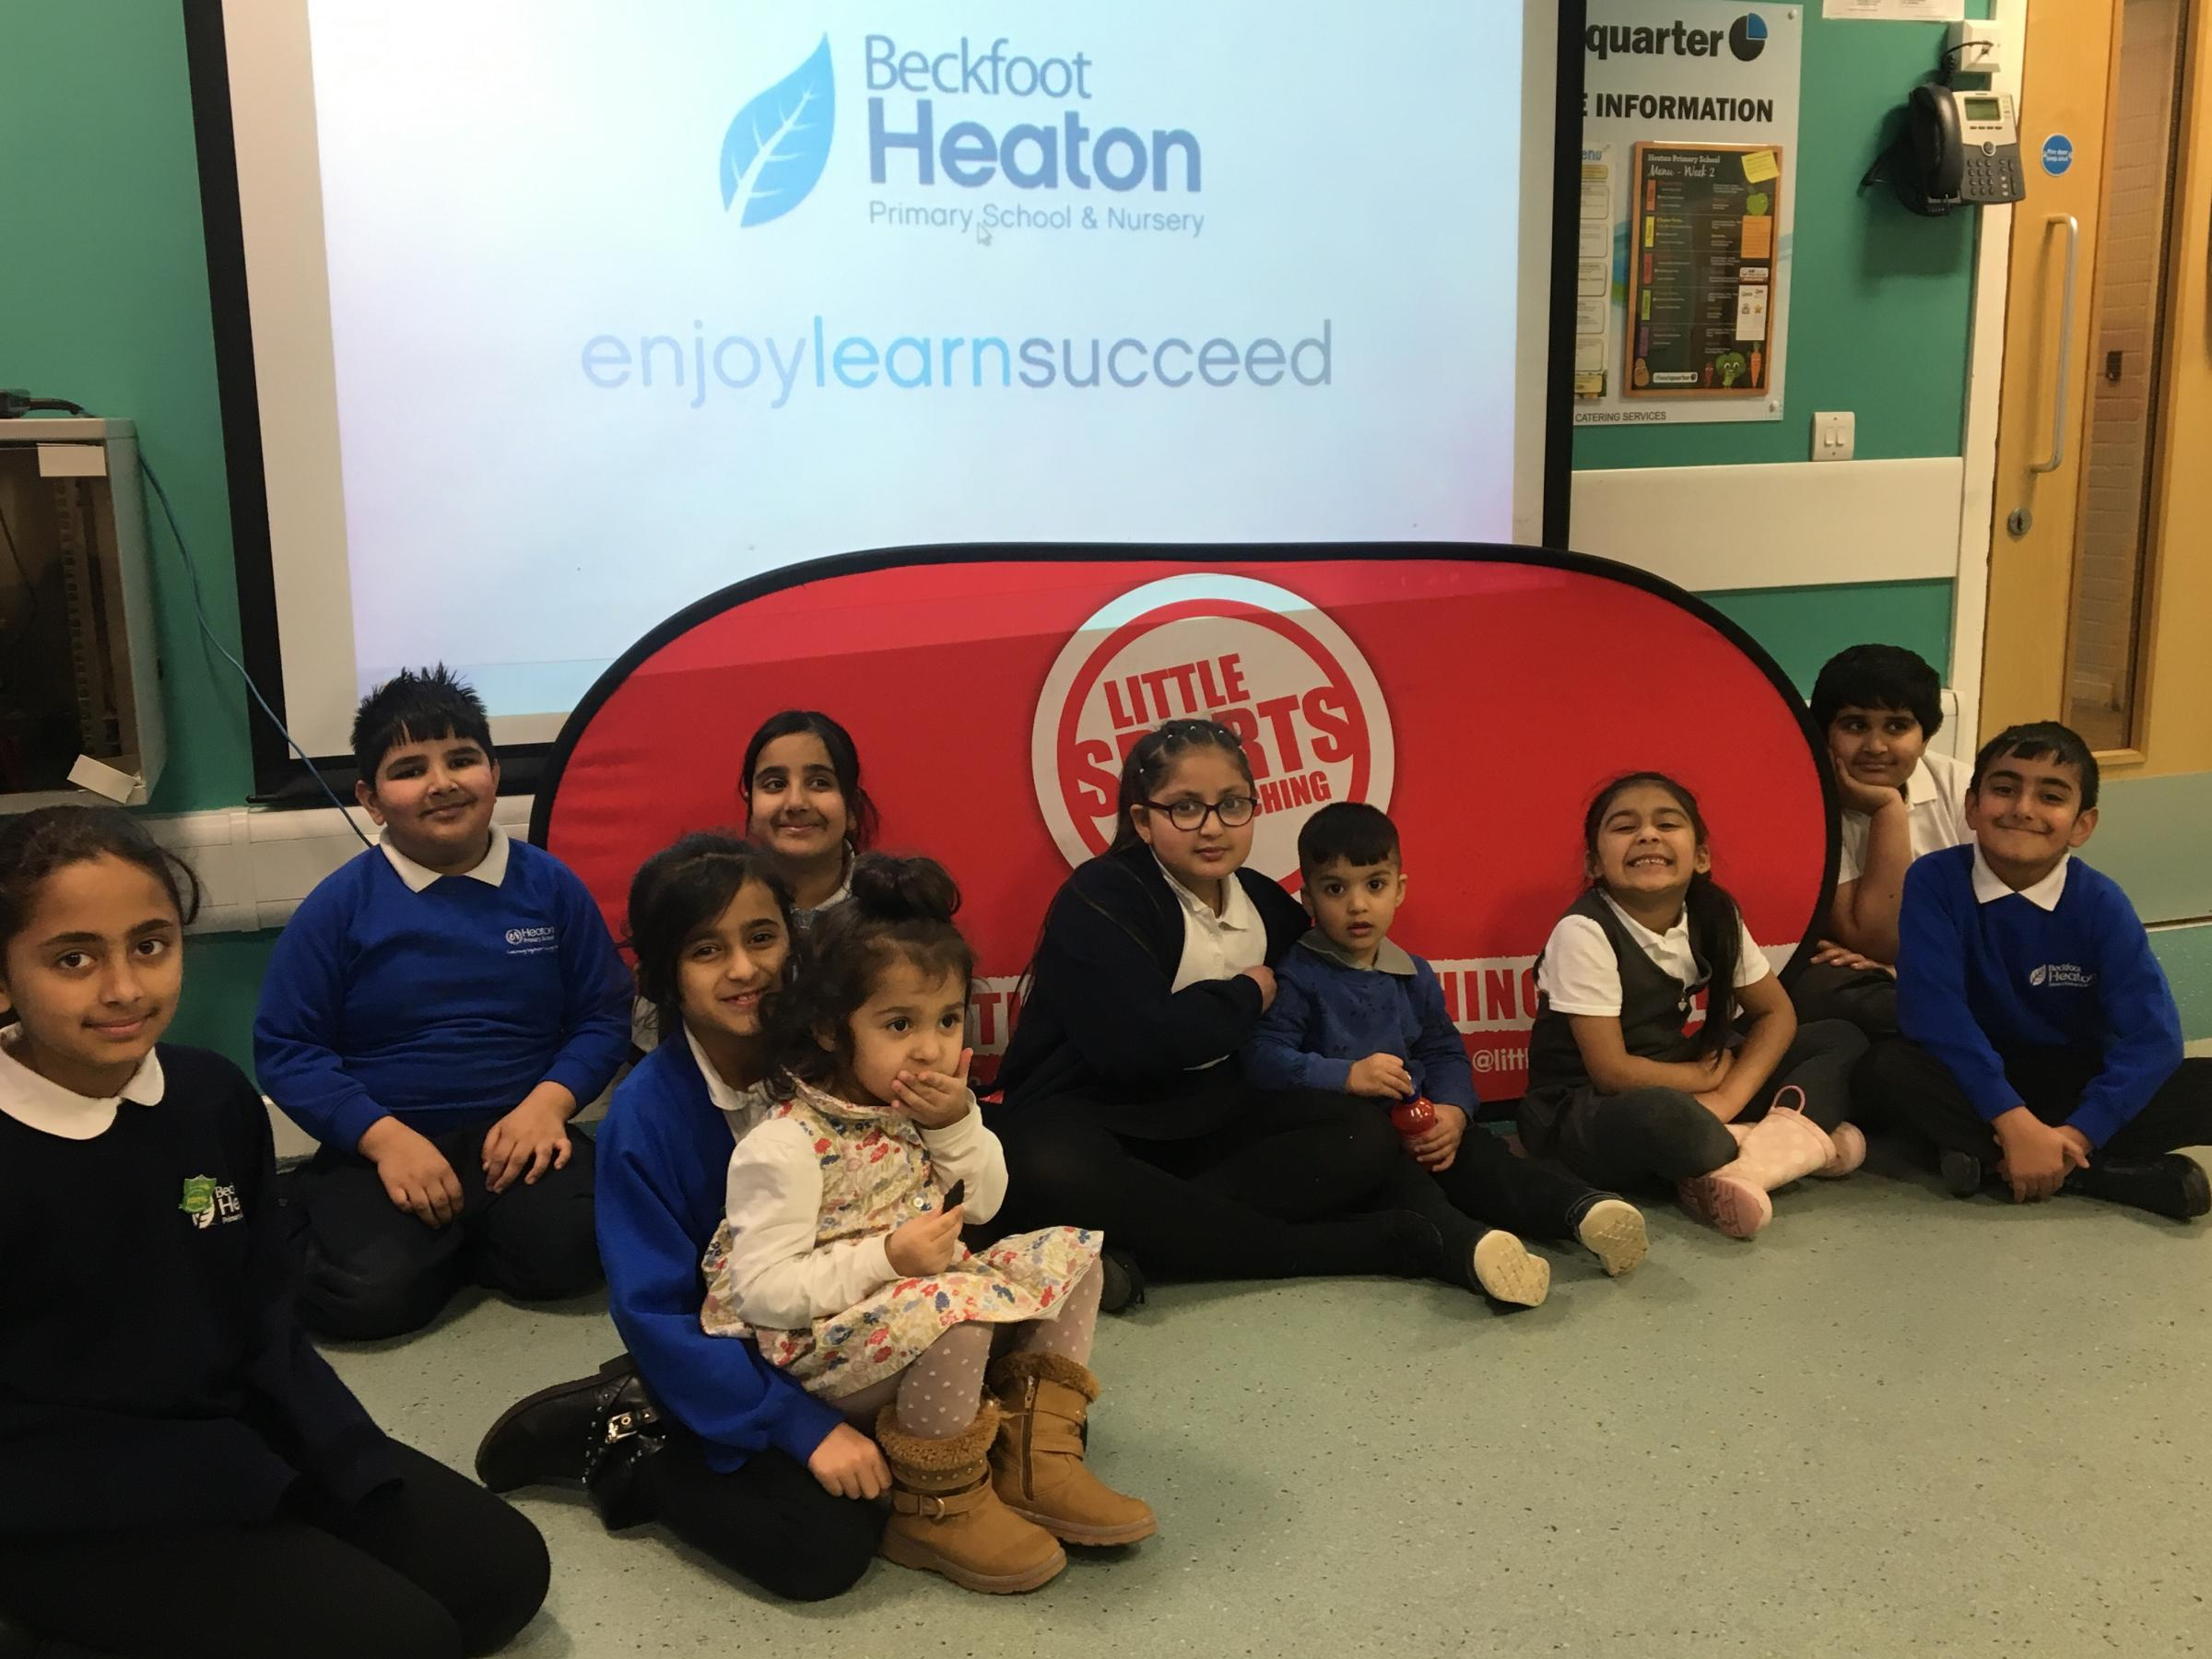 Children at Beckfoot Heaton Primary School, who took part in the 'ExerScience' programme